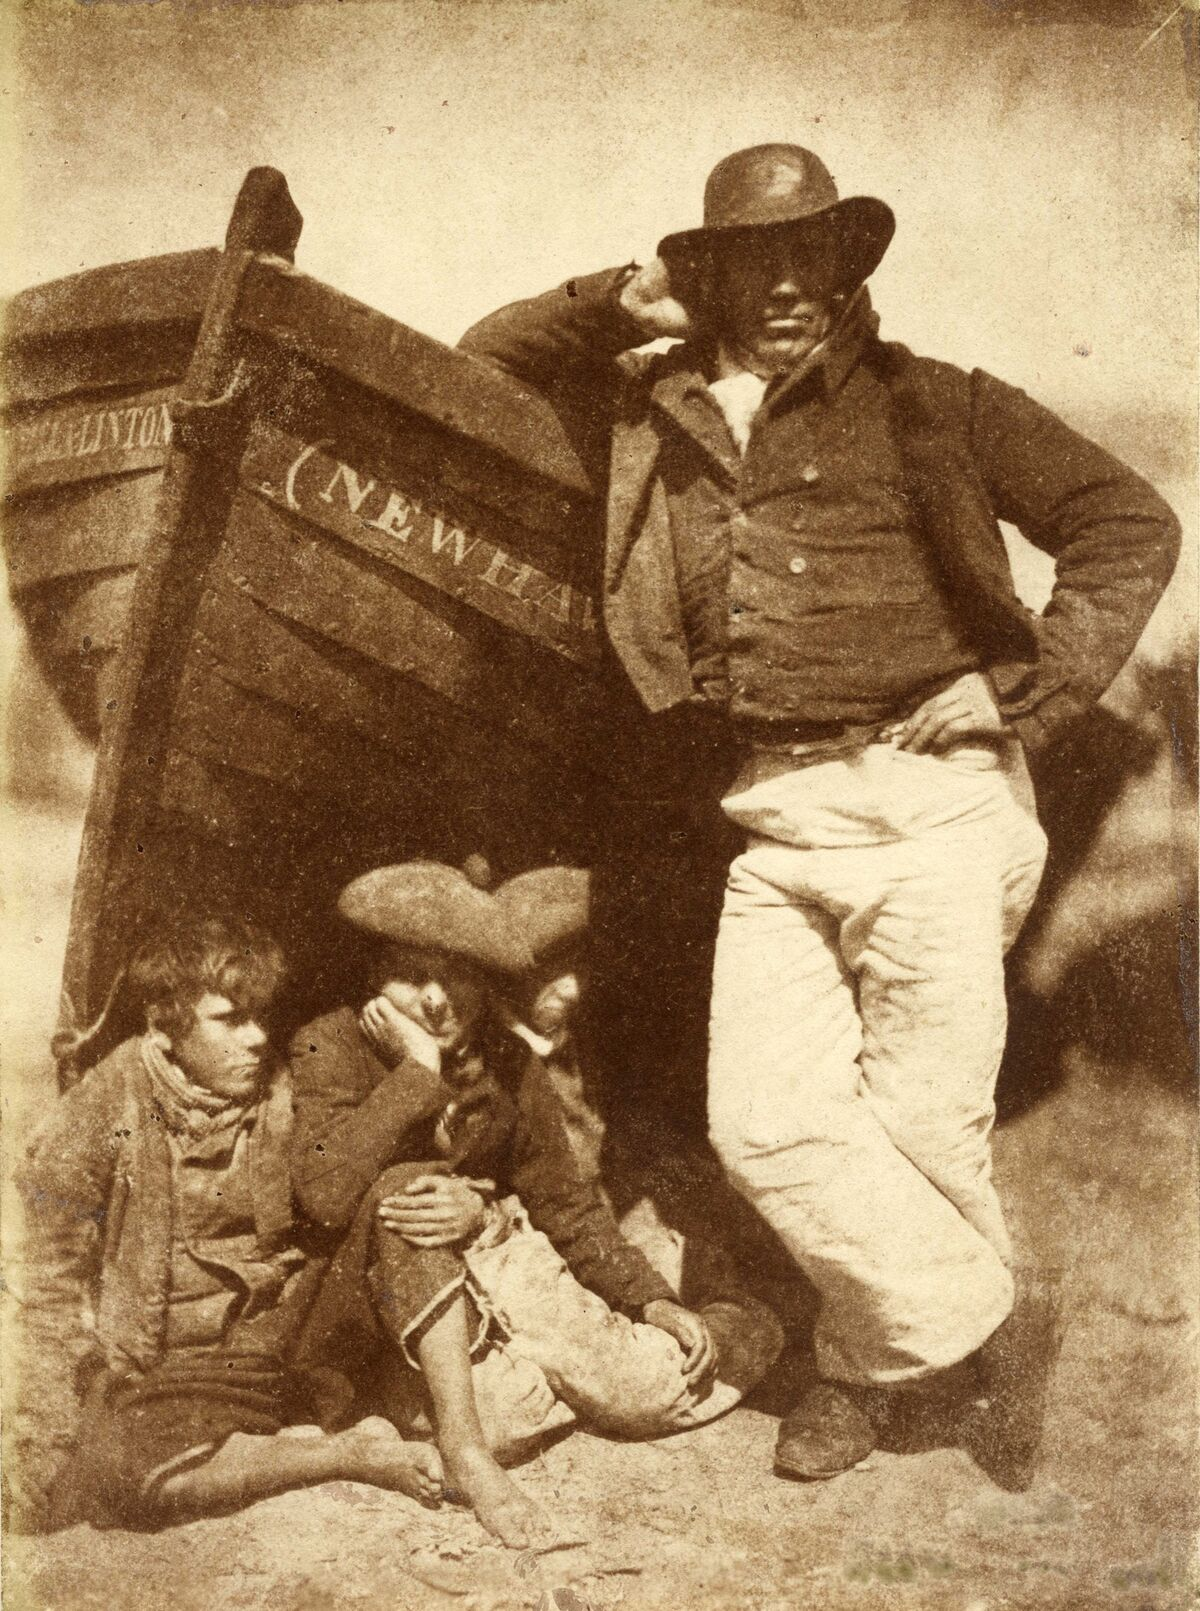 D.O. Hill and Robert Adamson. Sandy Linton, his boat and his bairns, New Haven, 1845. Courtesy of The Barnes Foundation, Michael Mattis and Judy Hochberg.